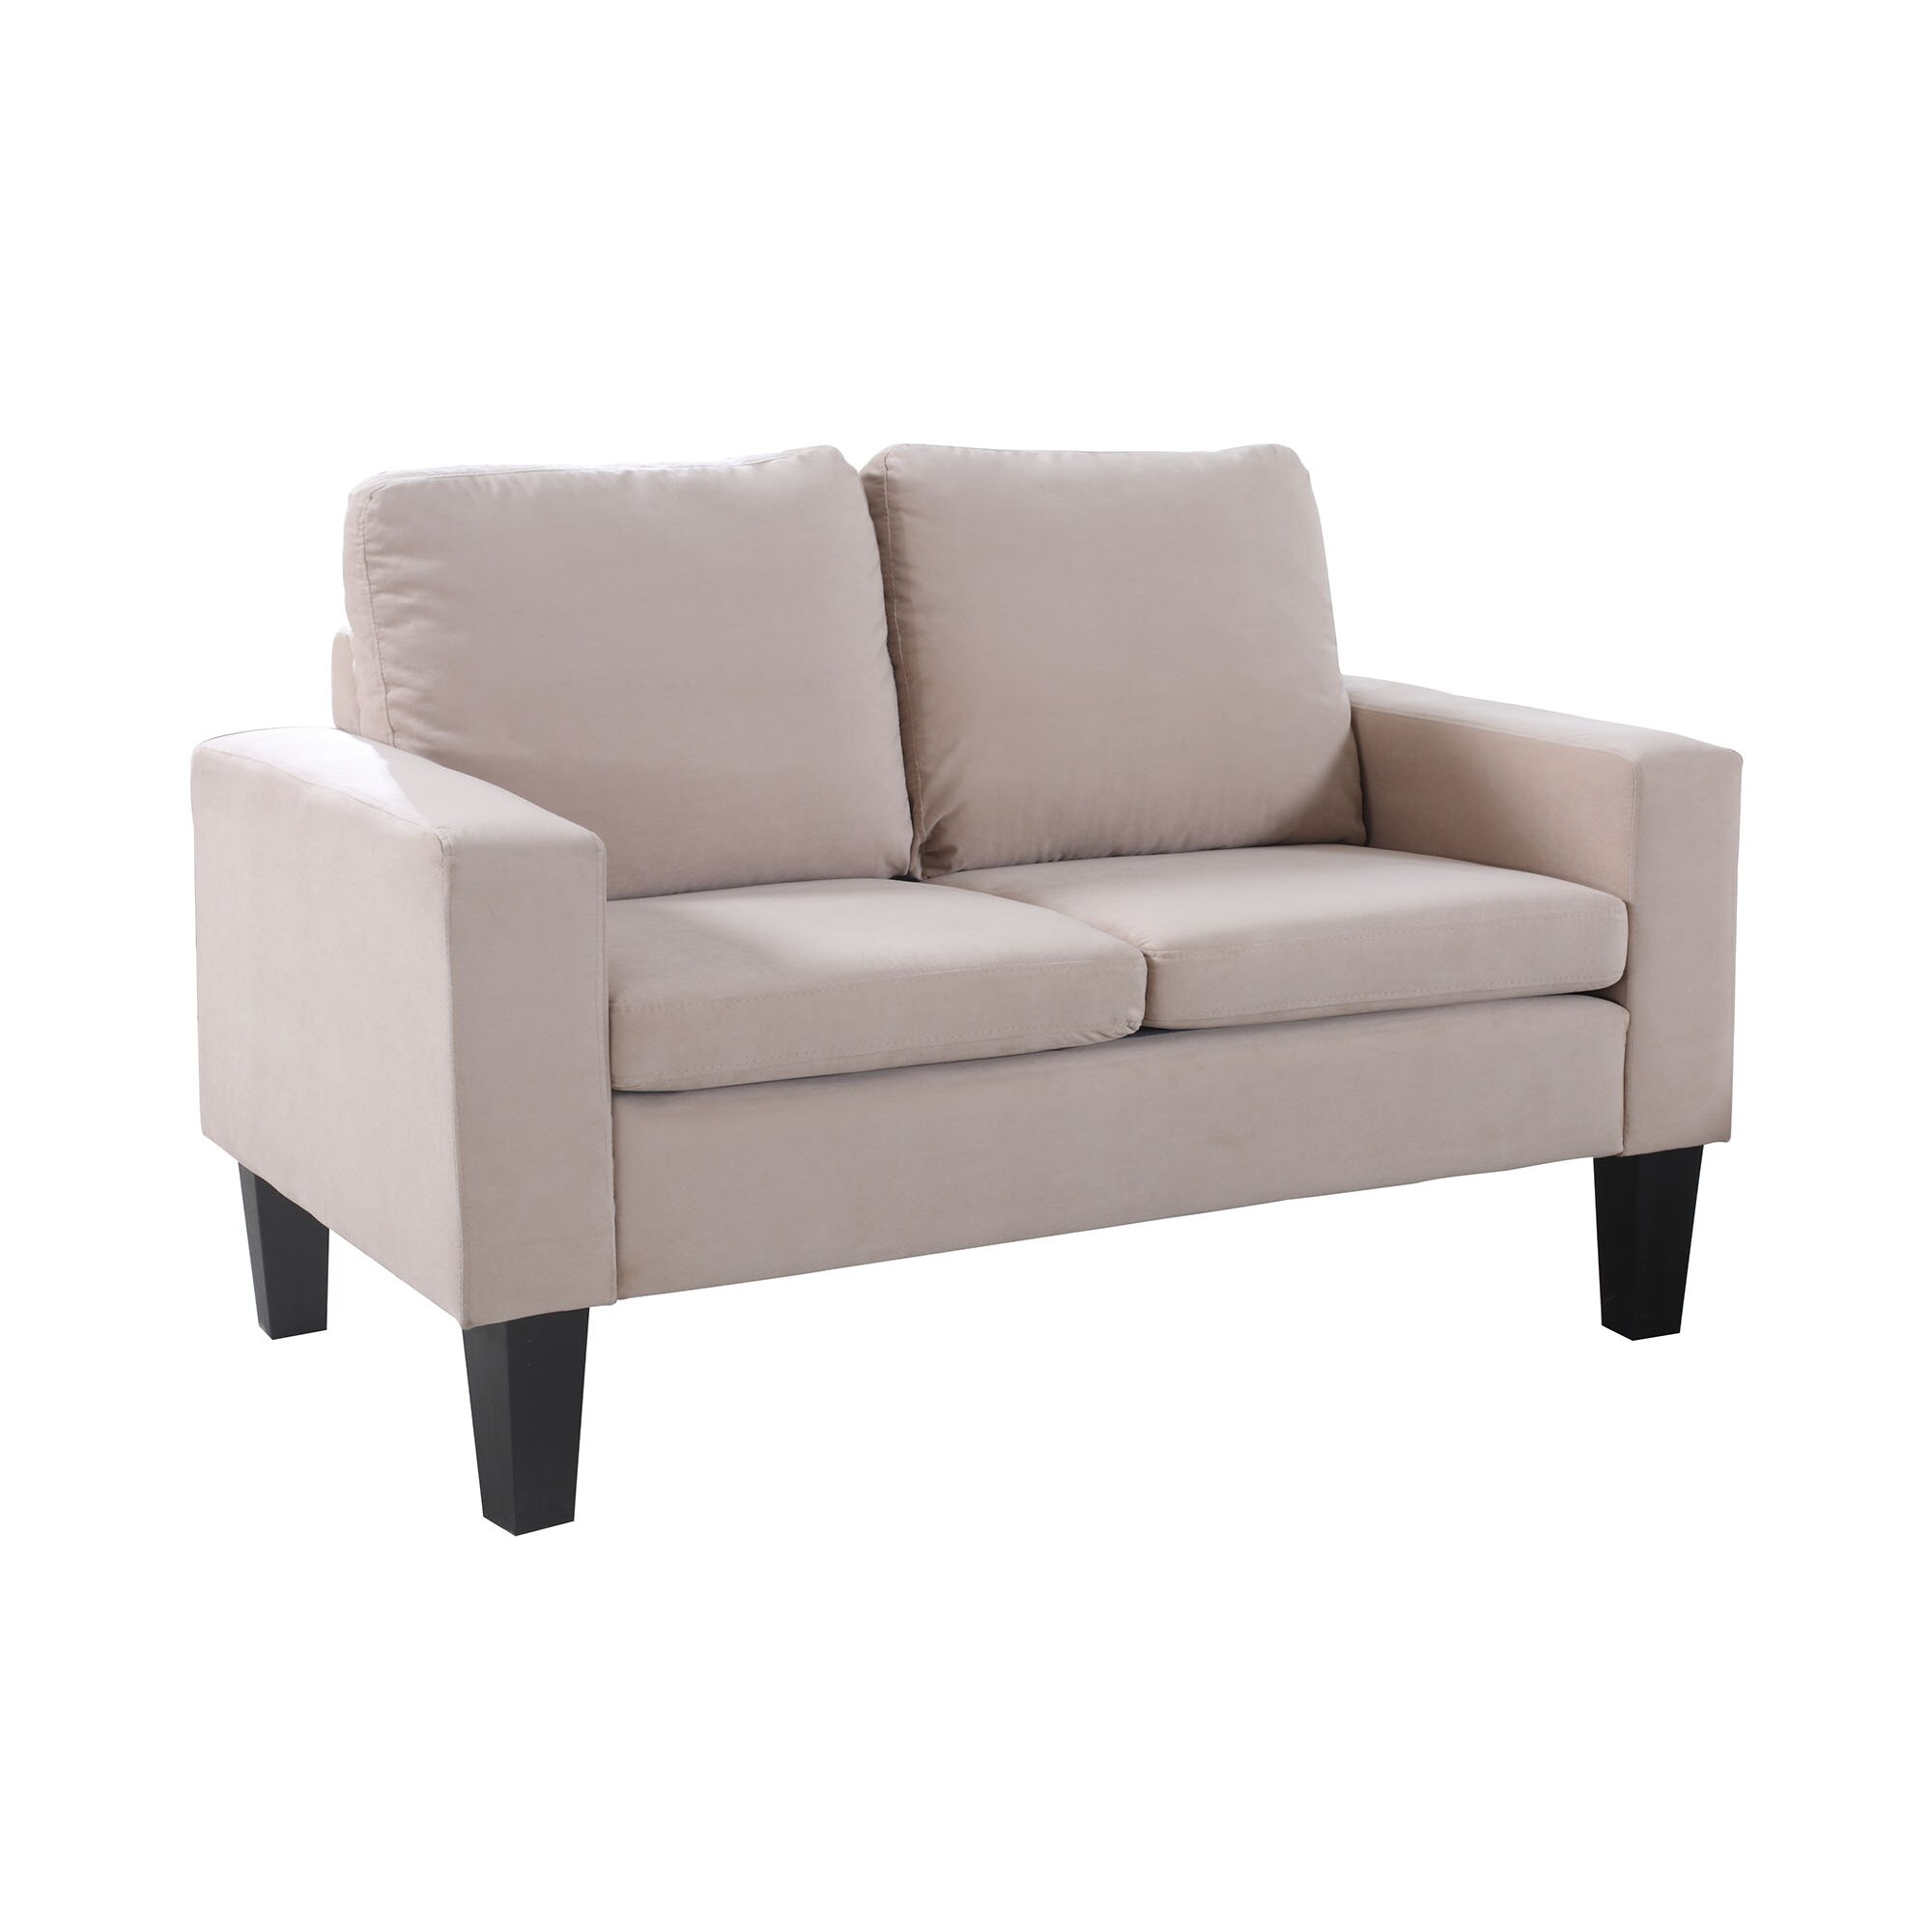 Nathanielhome Sarah Loveseat Reviews Wayfair